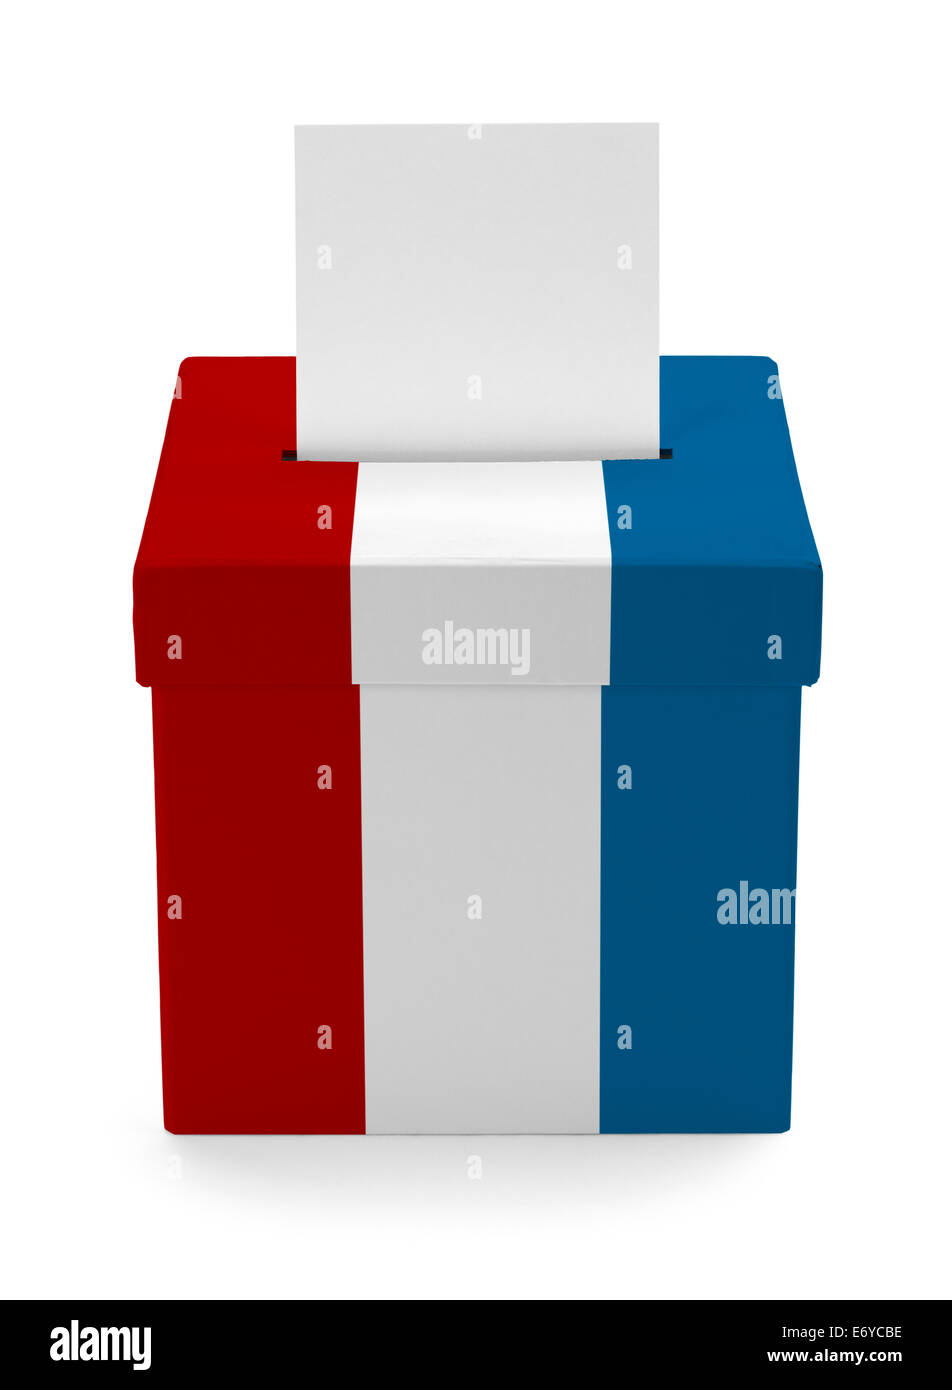 American Voting Box Isolated on White Background. - Stock Image